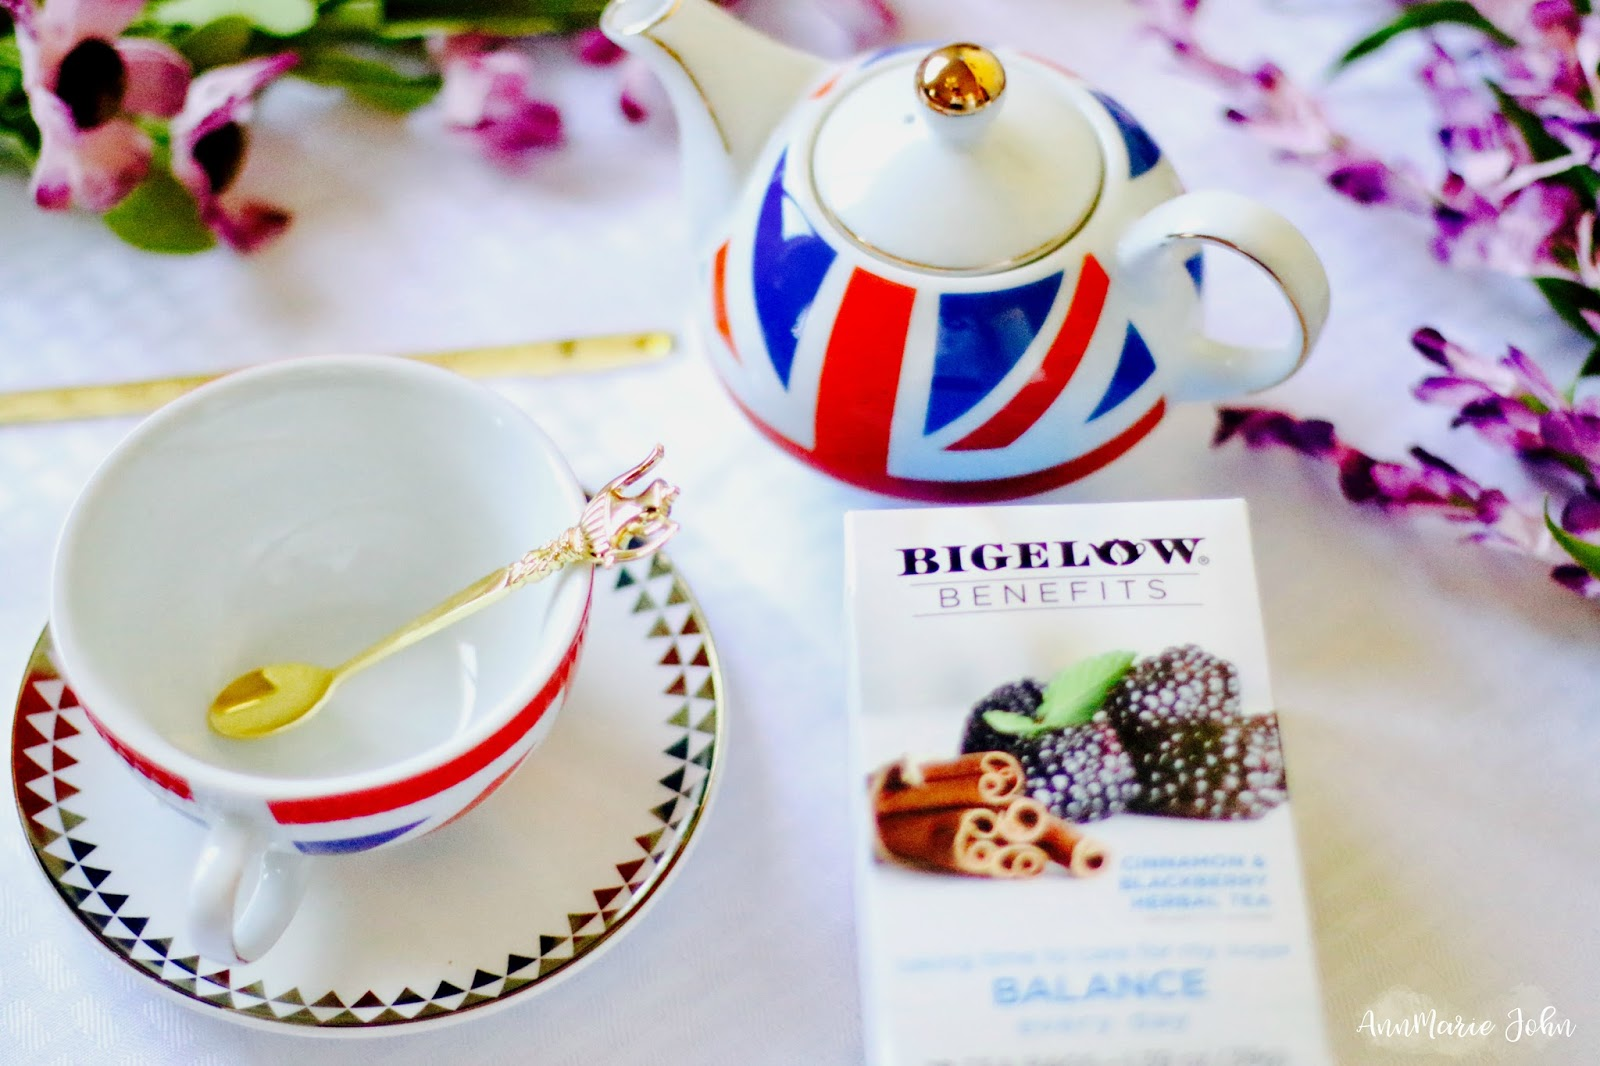 4 Ways to Live a More Balanced Lifestyle - #TeaProudly